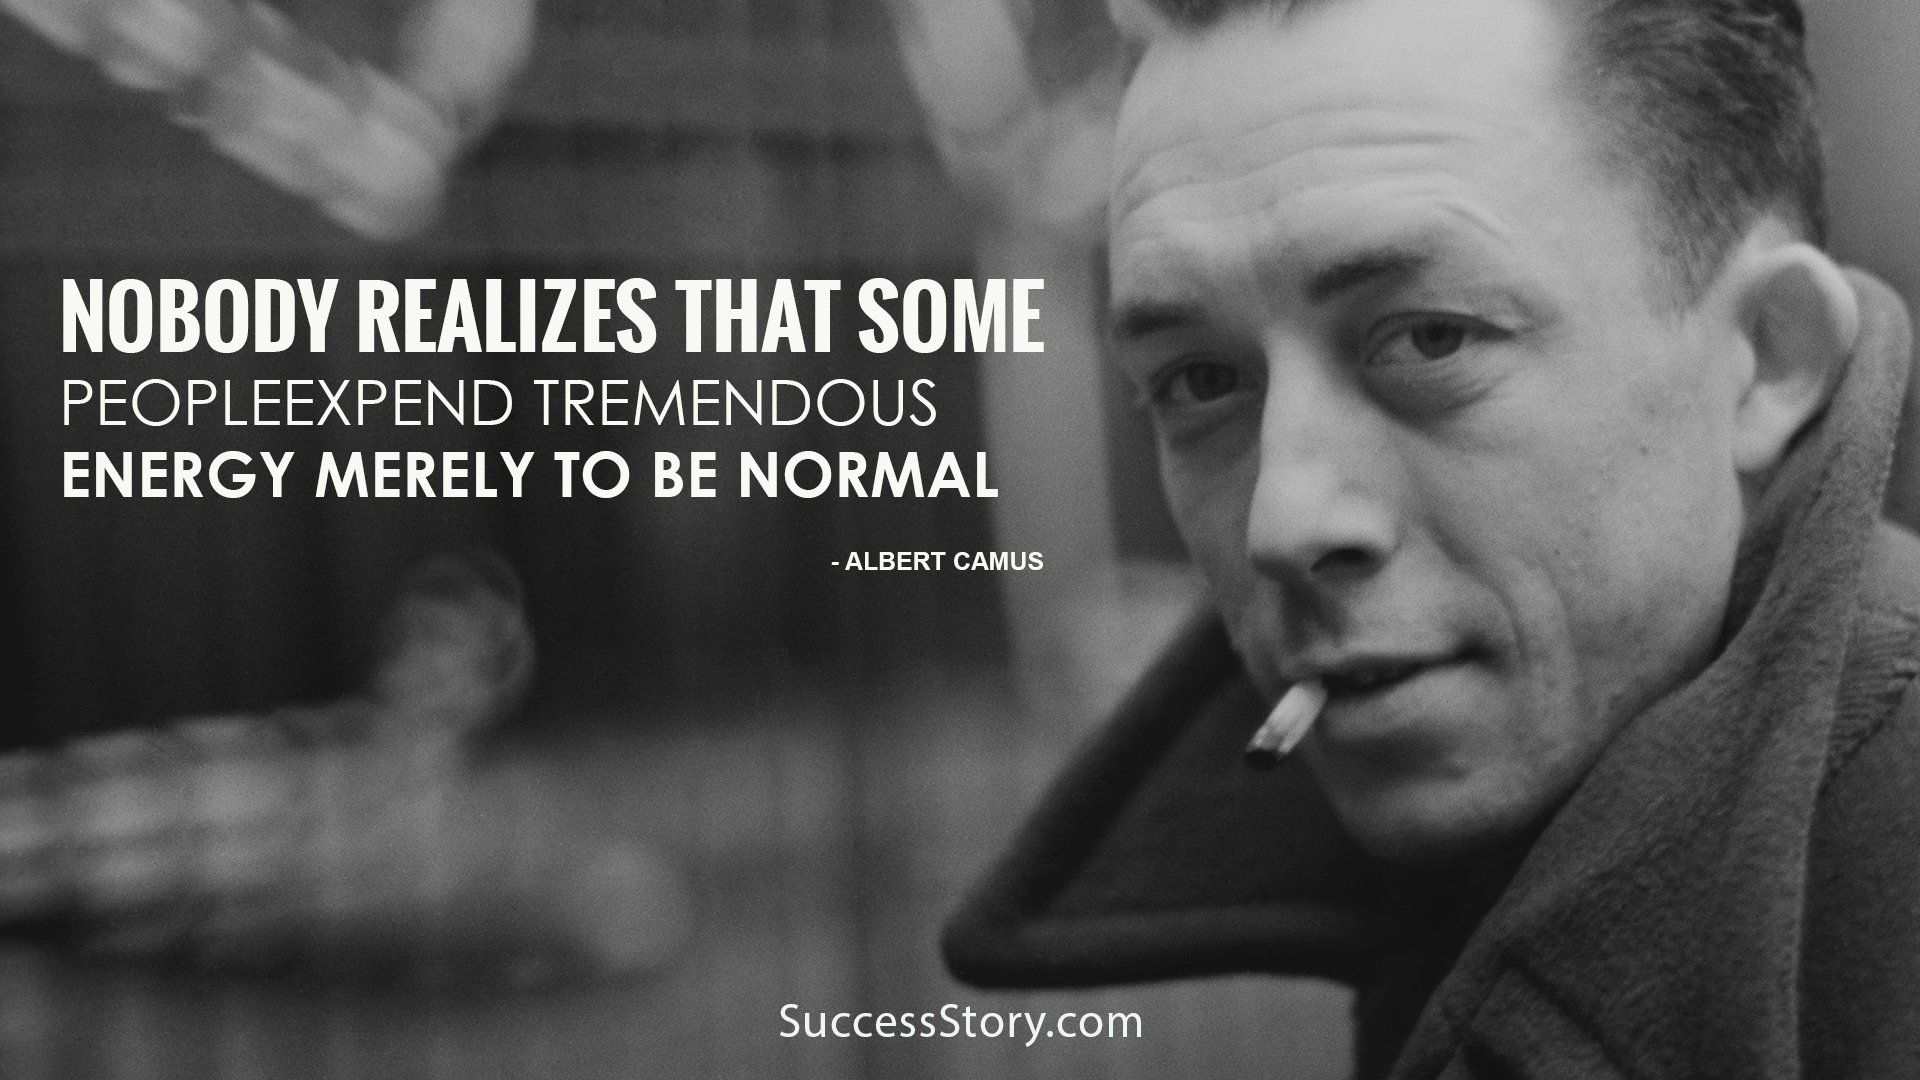 Albert camus quote about unique normal energy different -  Nobody Realizes That Some People Expend Tremendous Energy Merely To Be Normal Albert Camus Quotes